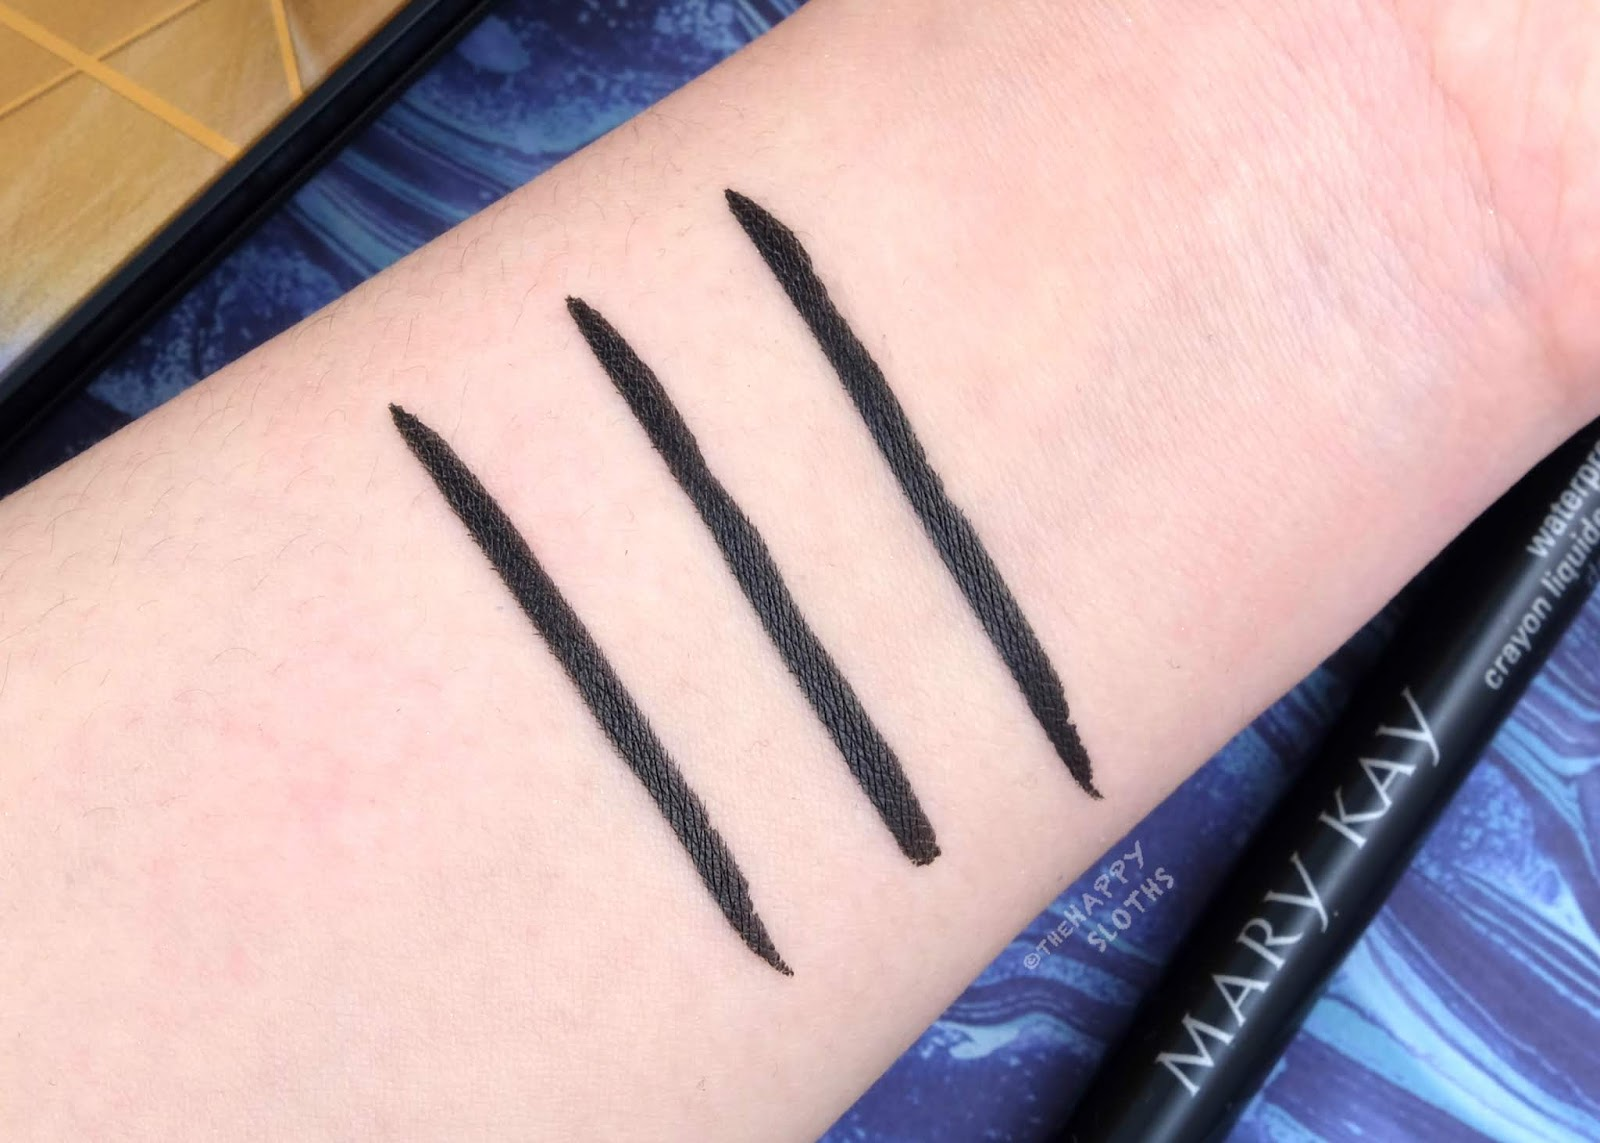 Mary Kay   Spring 2020 Waterproof Liquid Eyeliner: Review and Swatches